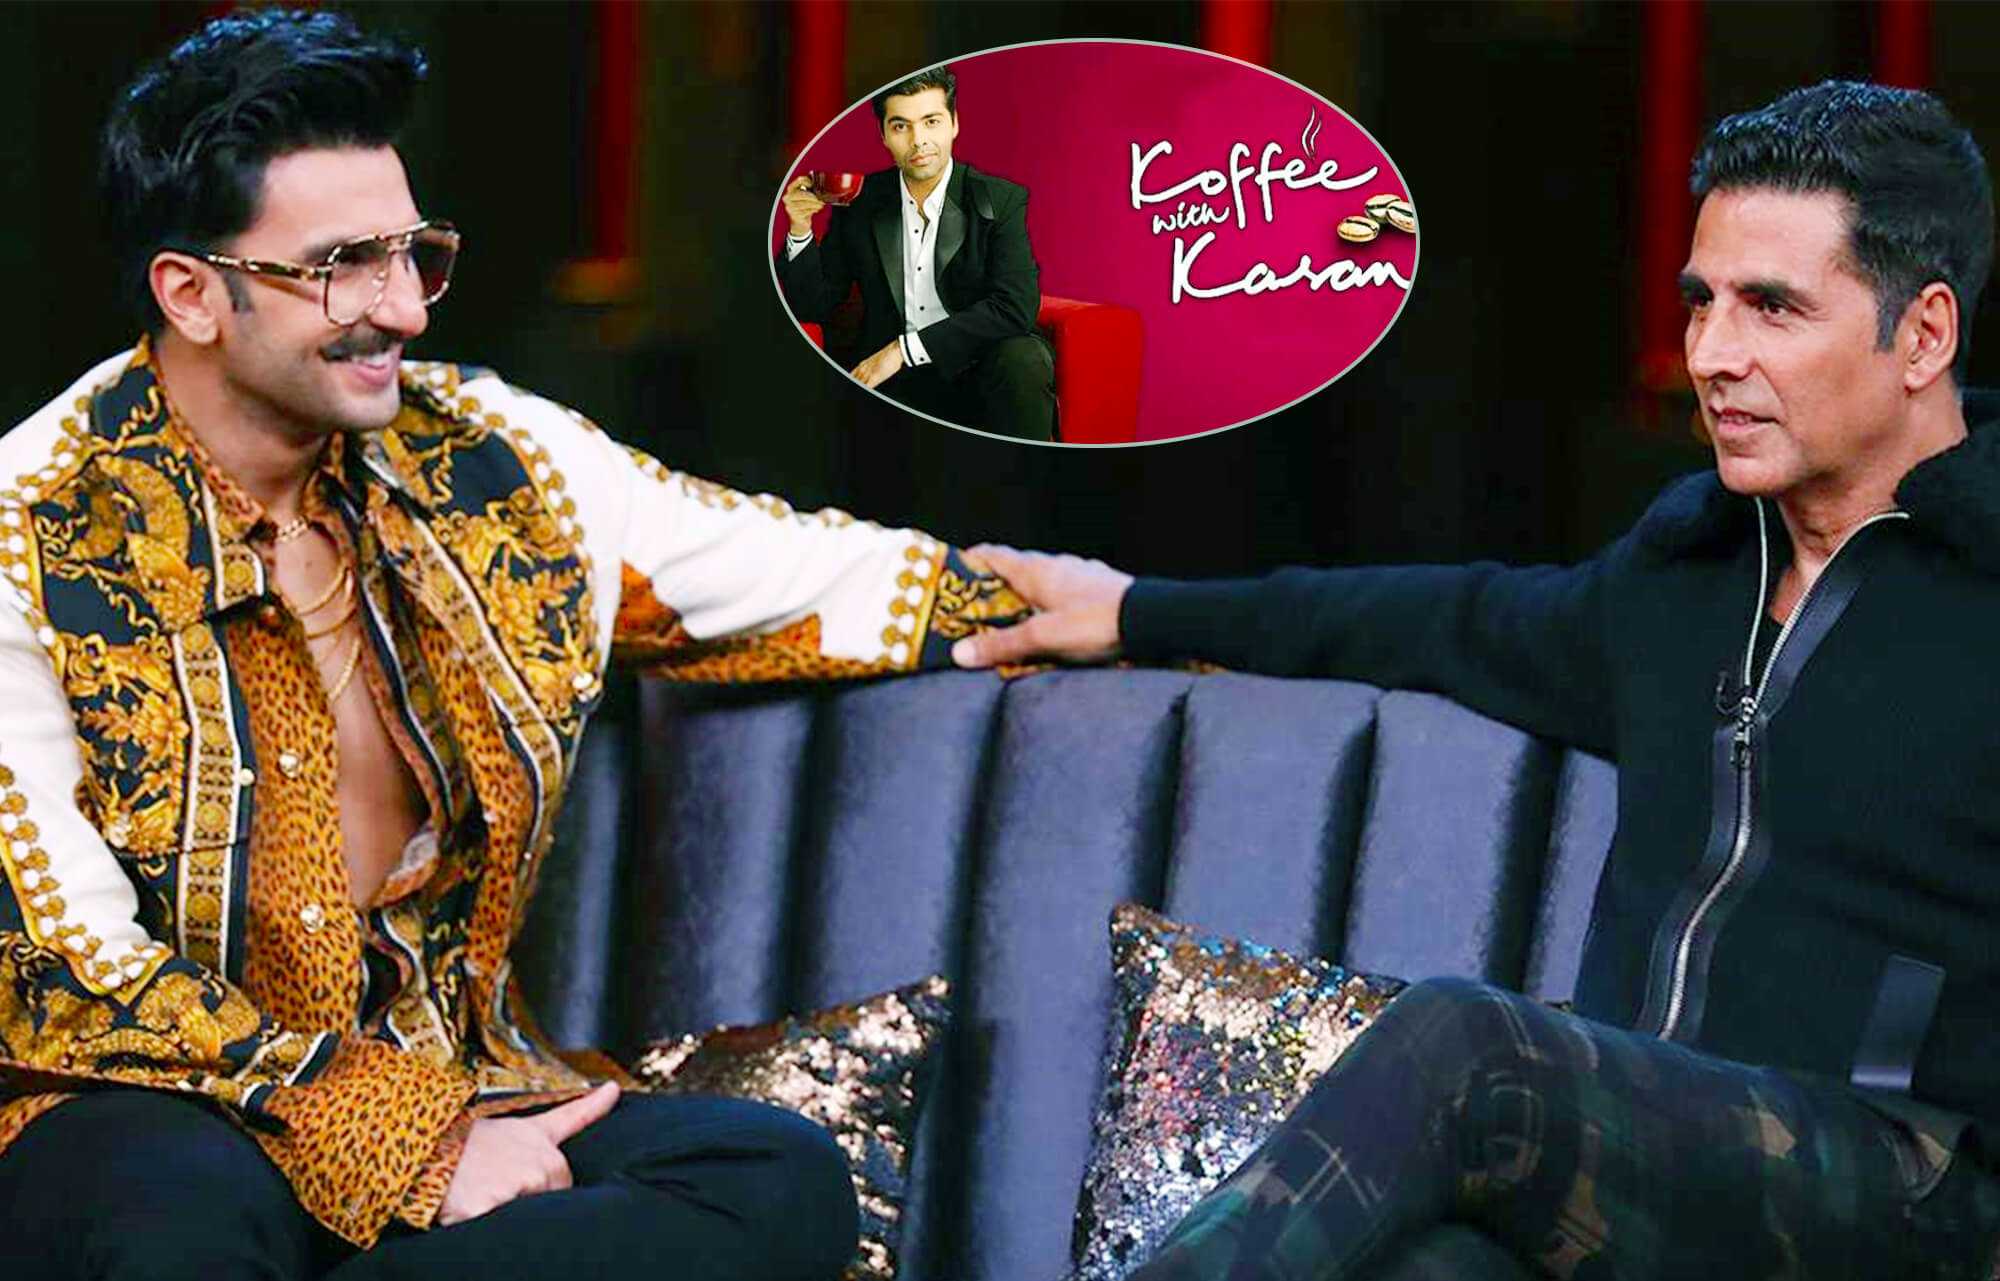 Koffee with Karan 6 cover pic